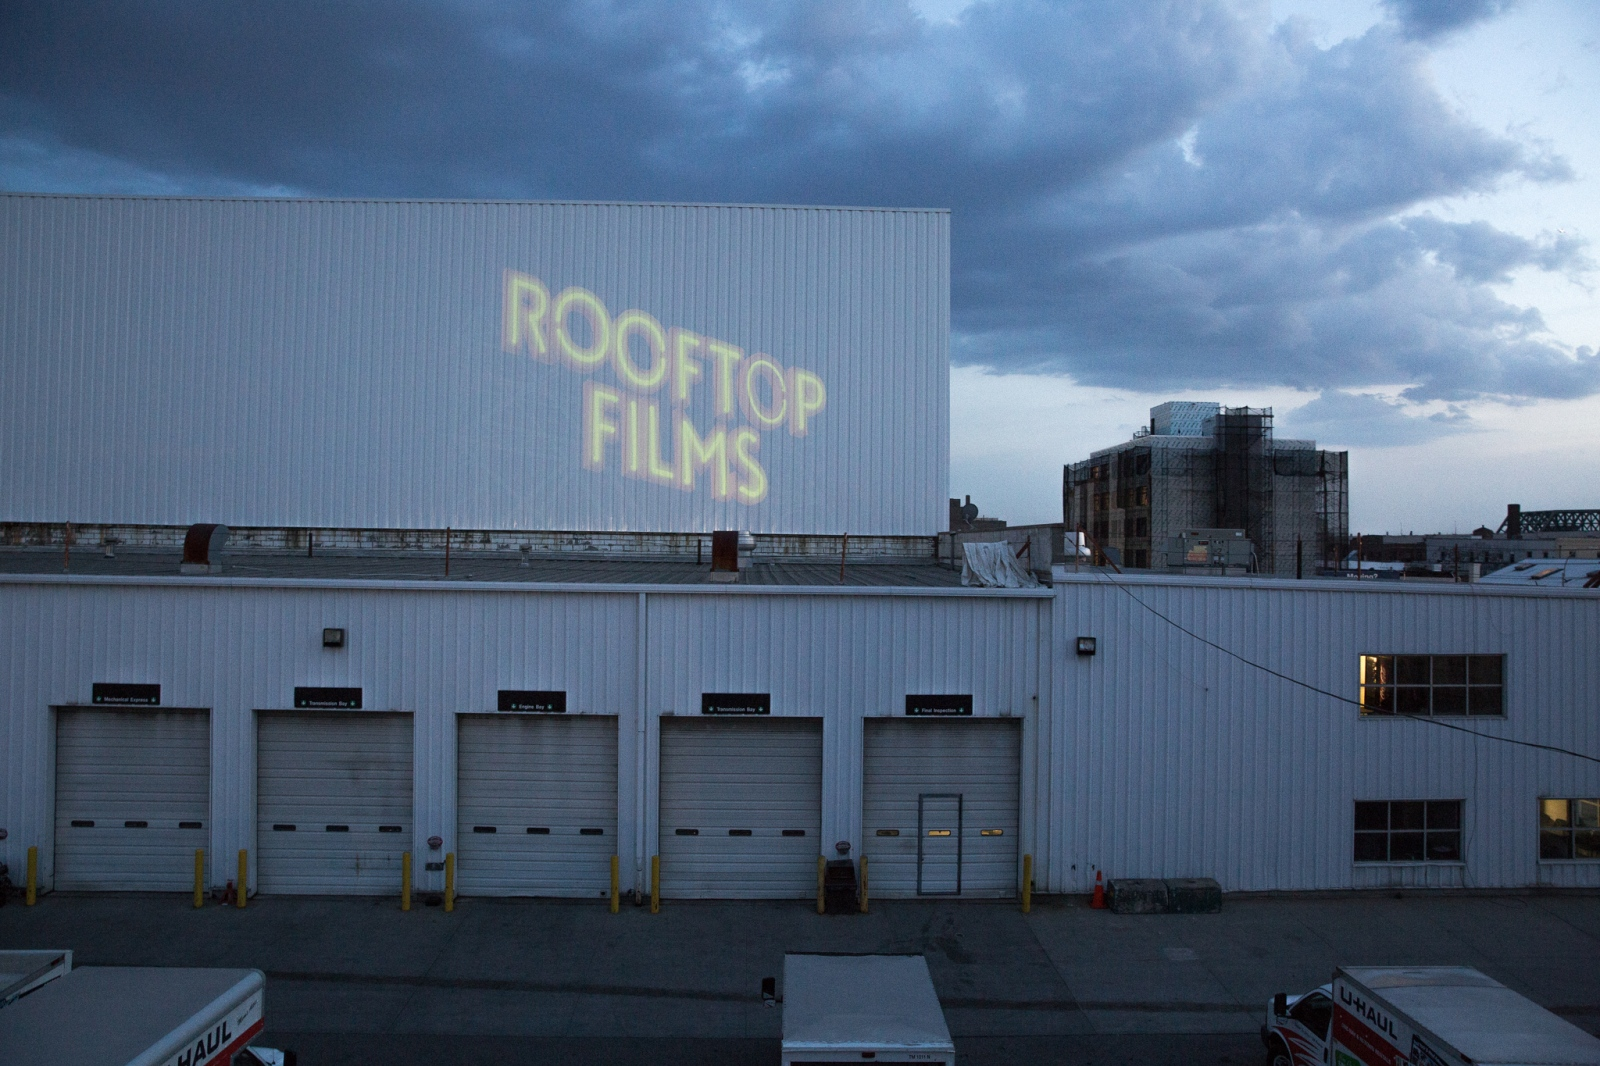 (2017)  Rooftop Films is a non-profit organization based in New York City whose mission is to engage and inspire diverse communities by showing movies in outdoor locations, helping filmmakers to produce new films, and renting equipment at low-cost to artists and non-profits.